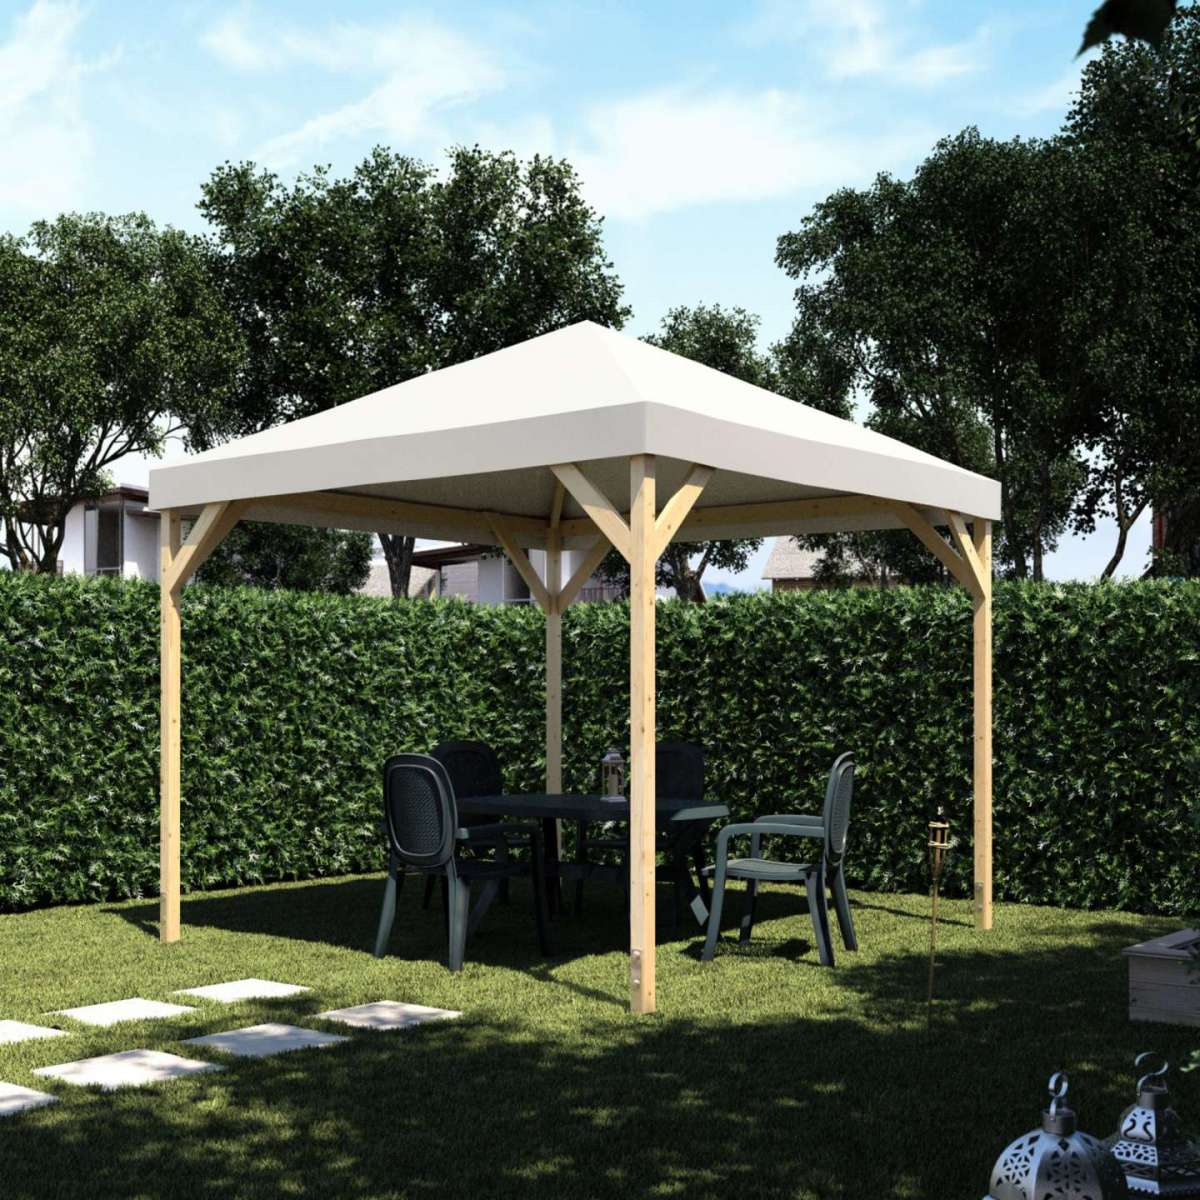 Catalogo leroy merlin giardino 2017 foto design mag for Gazebo pieghevole leroy merlin